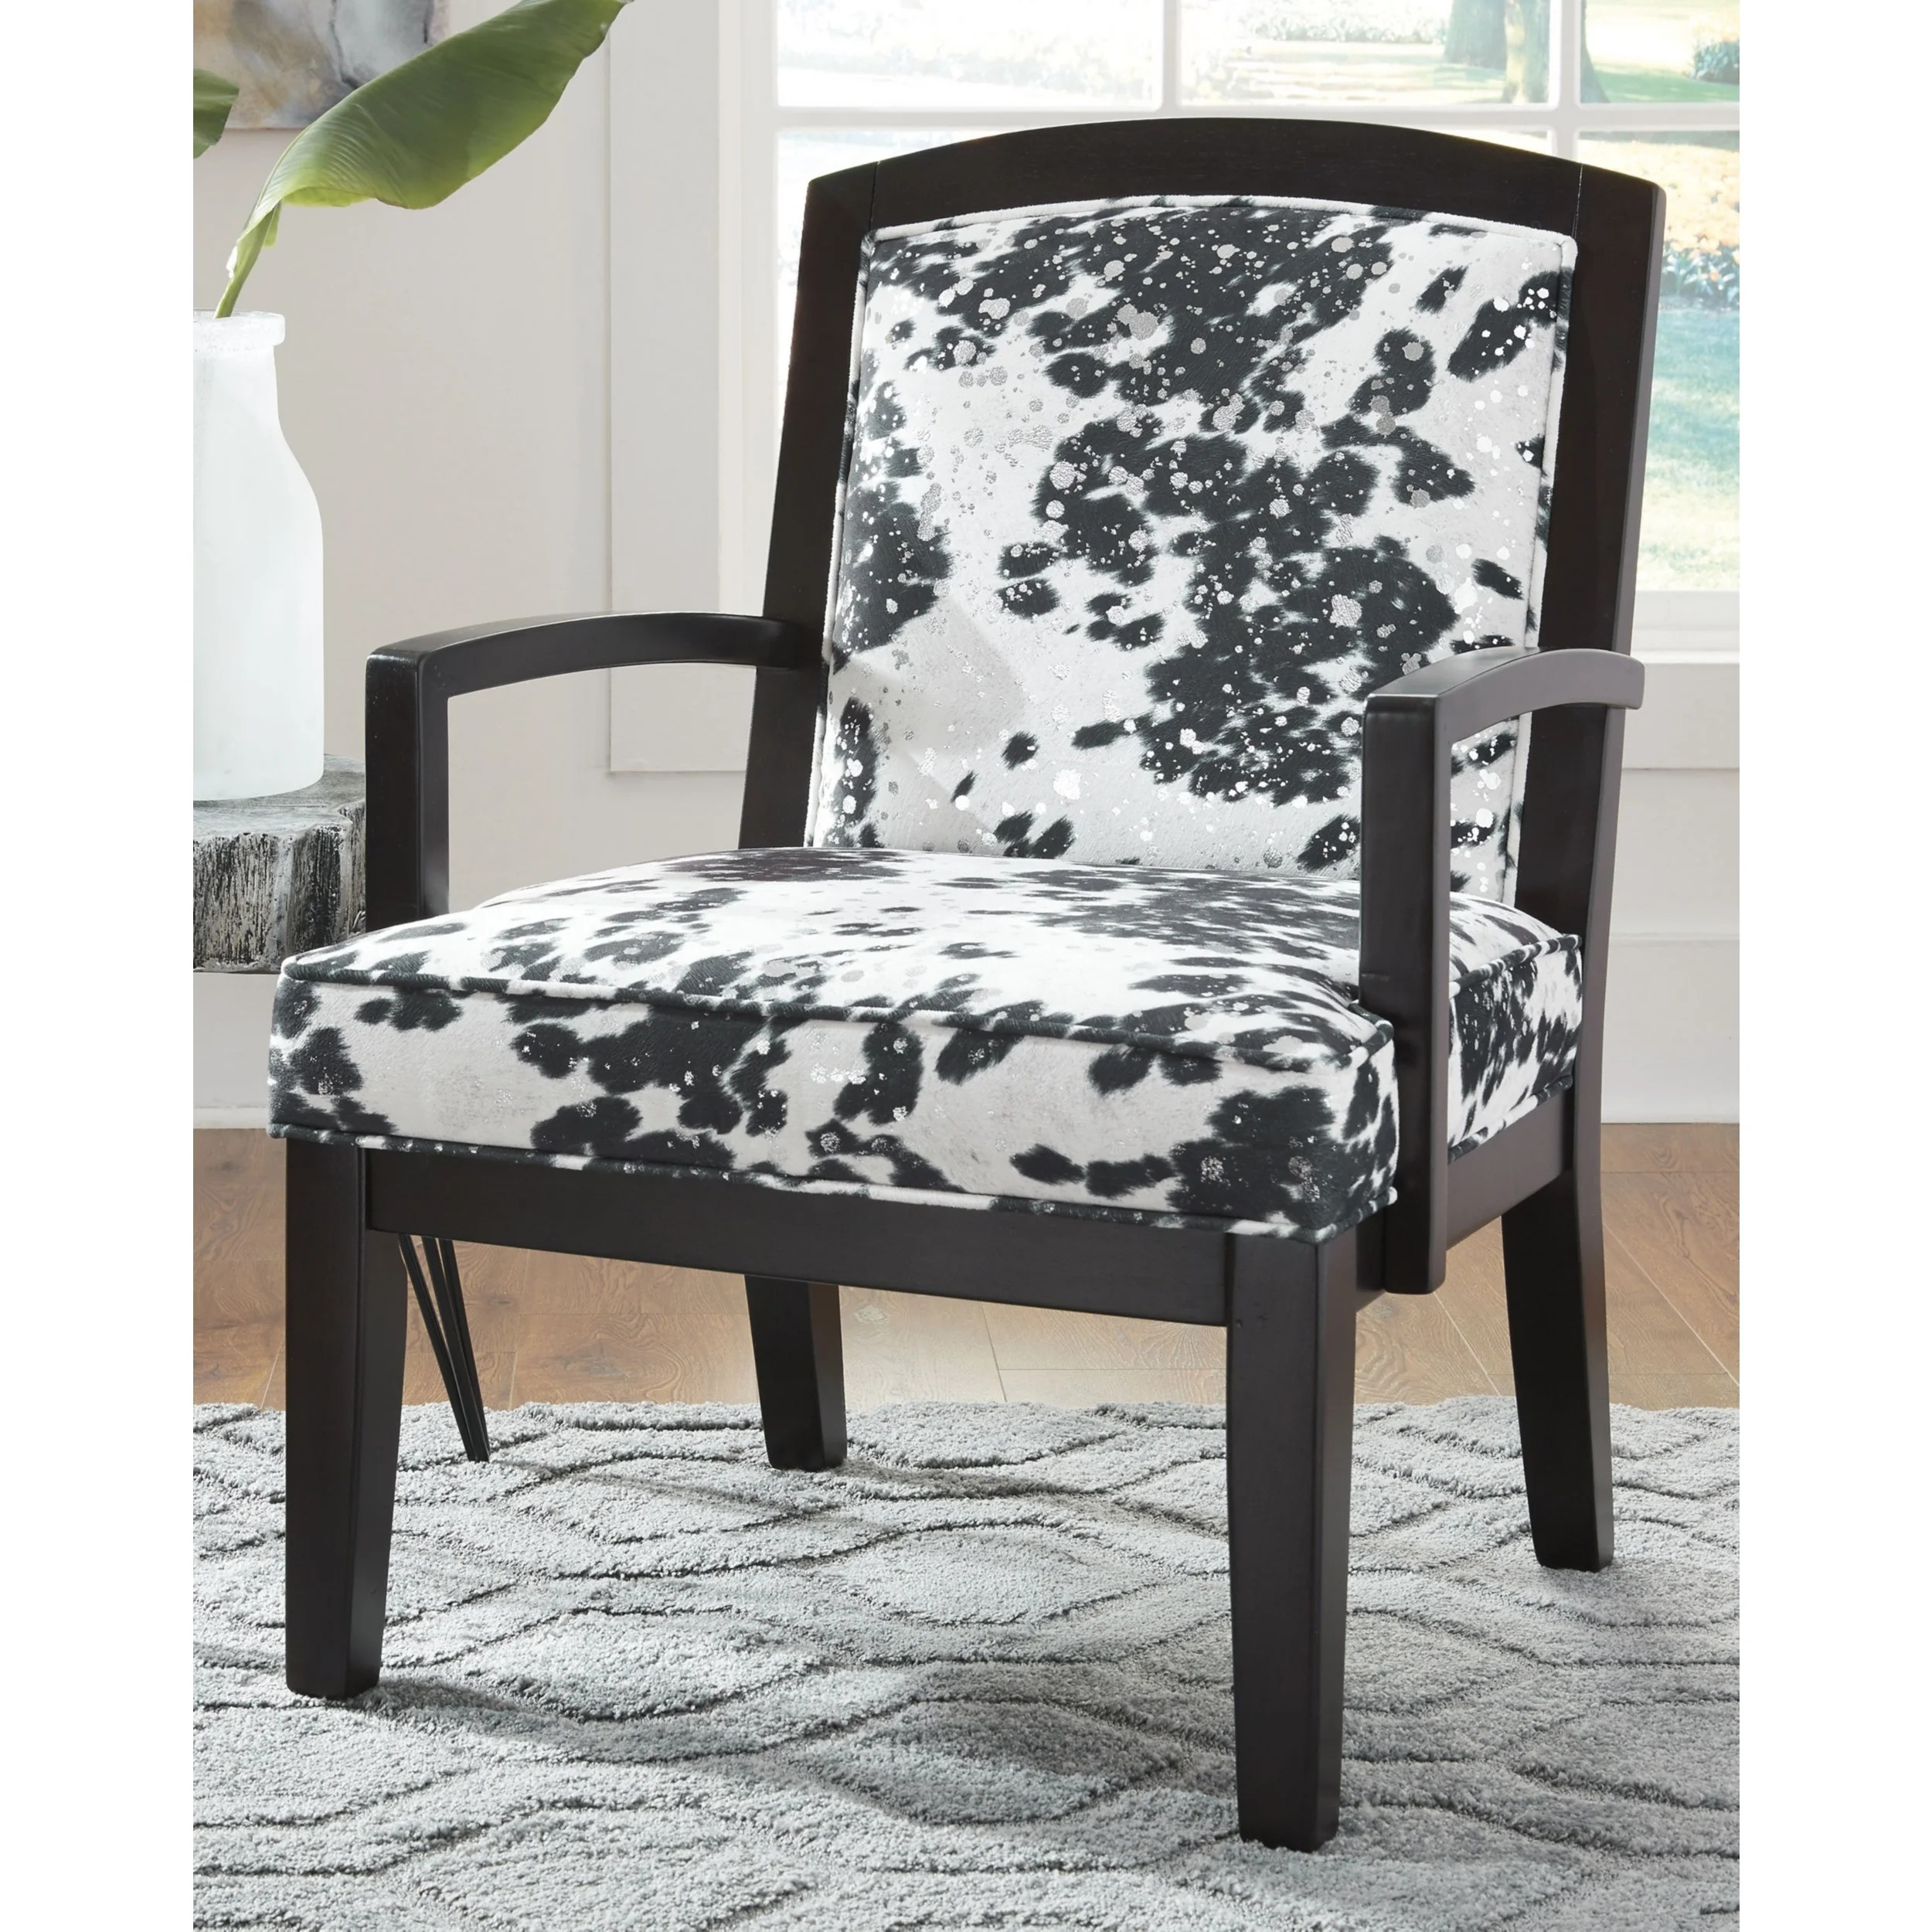 Black And White Accent Chair Signature Design By Ashley Treven Black White Upholstered Wood Accent Chair